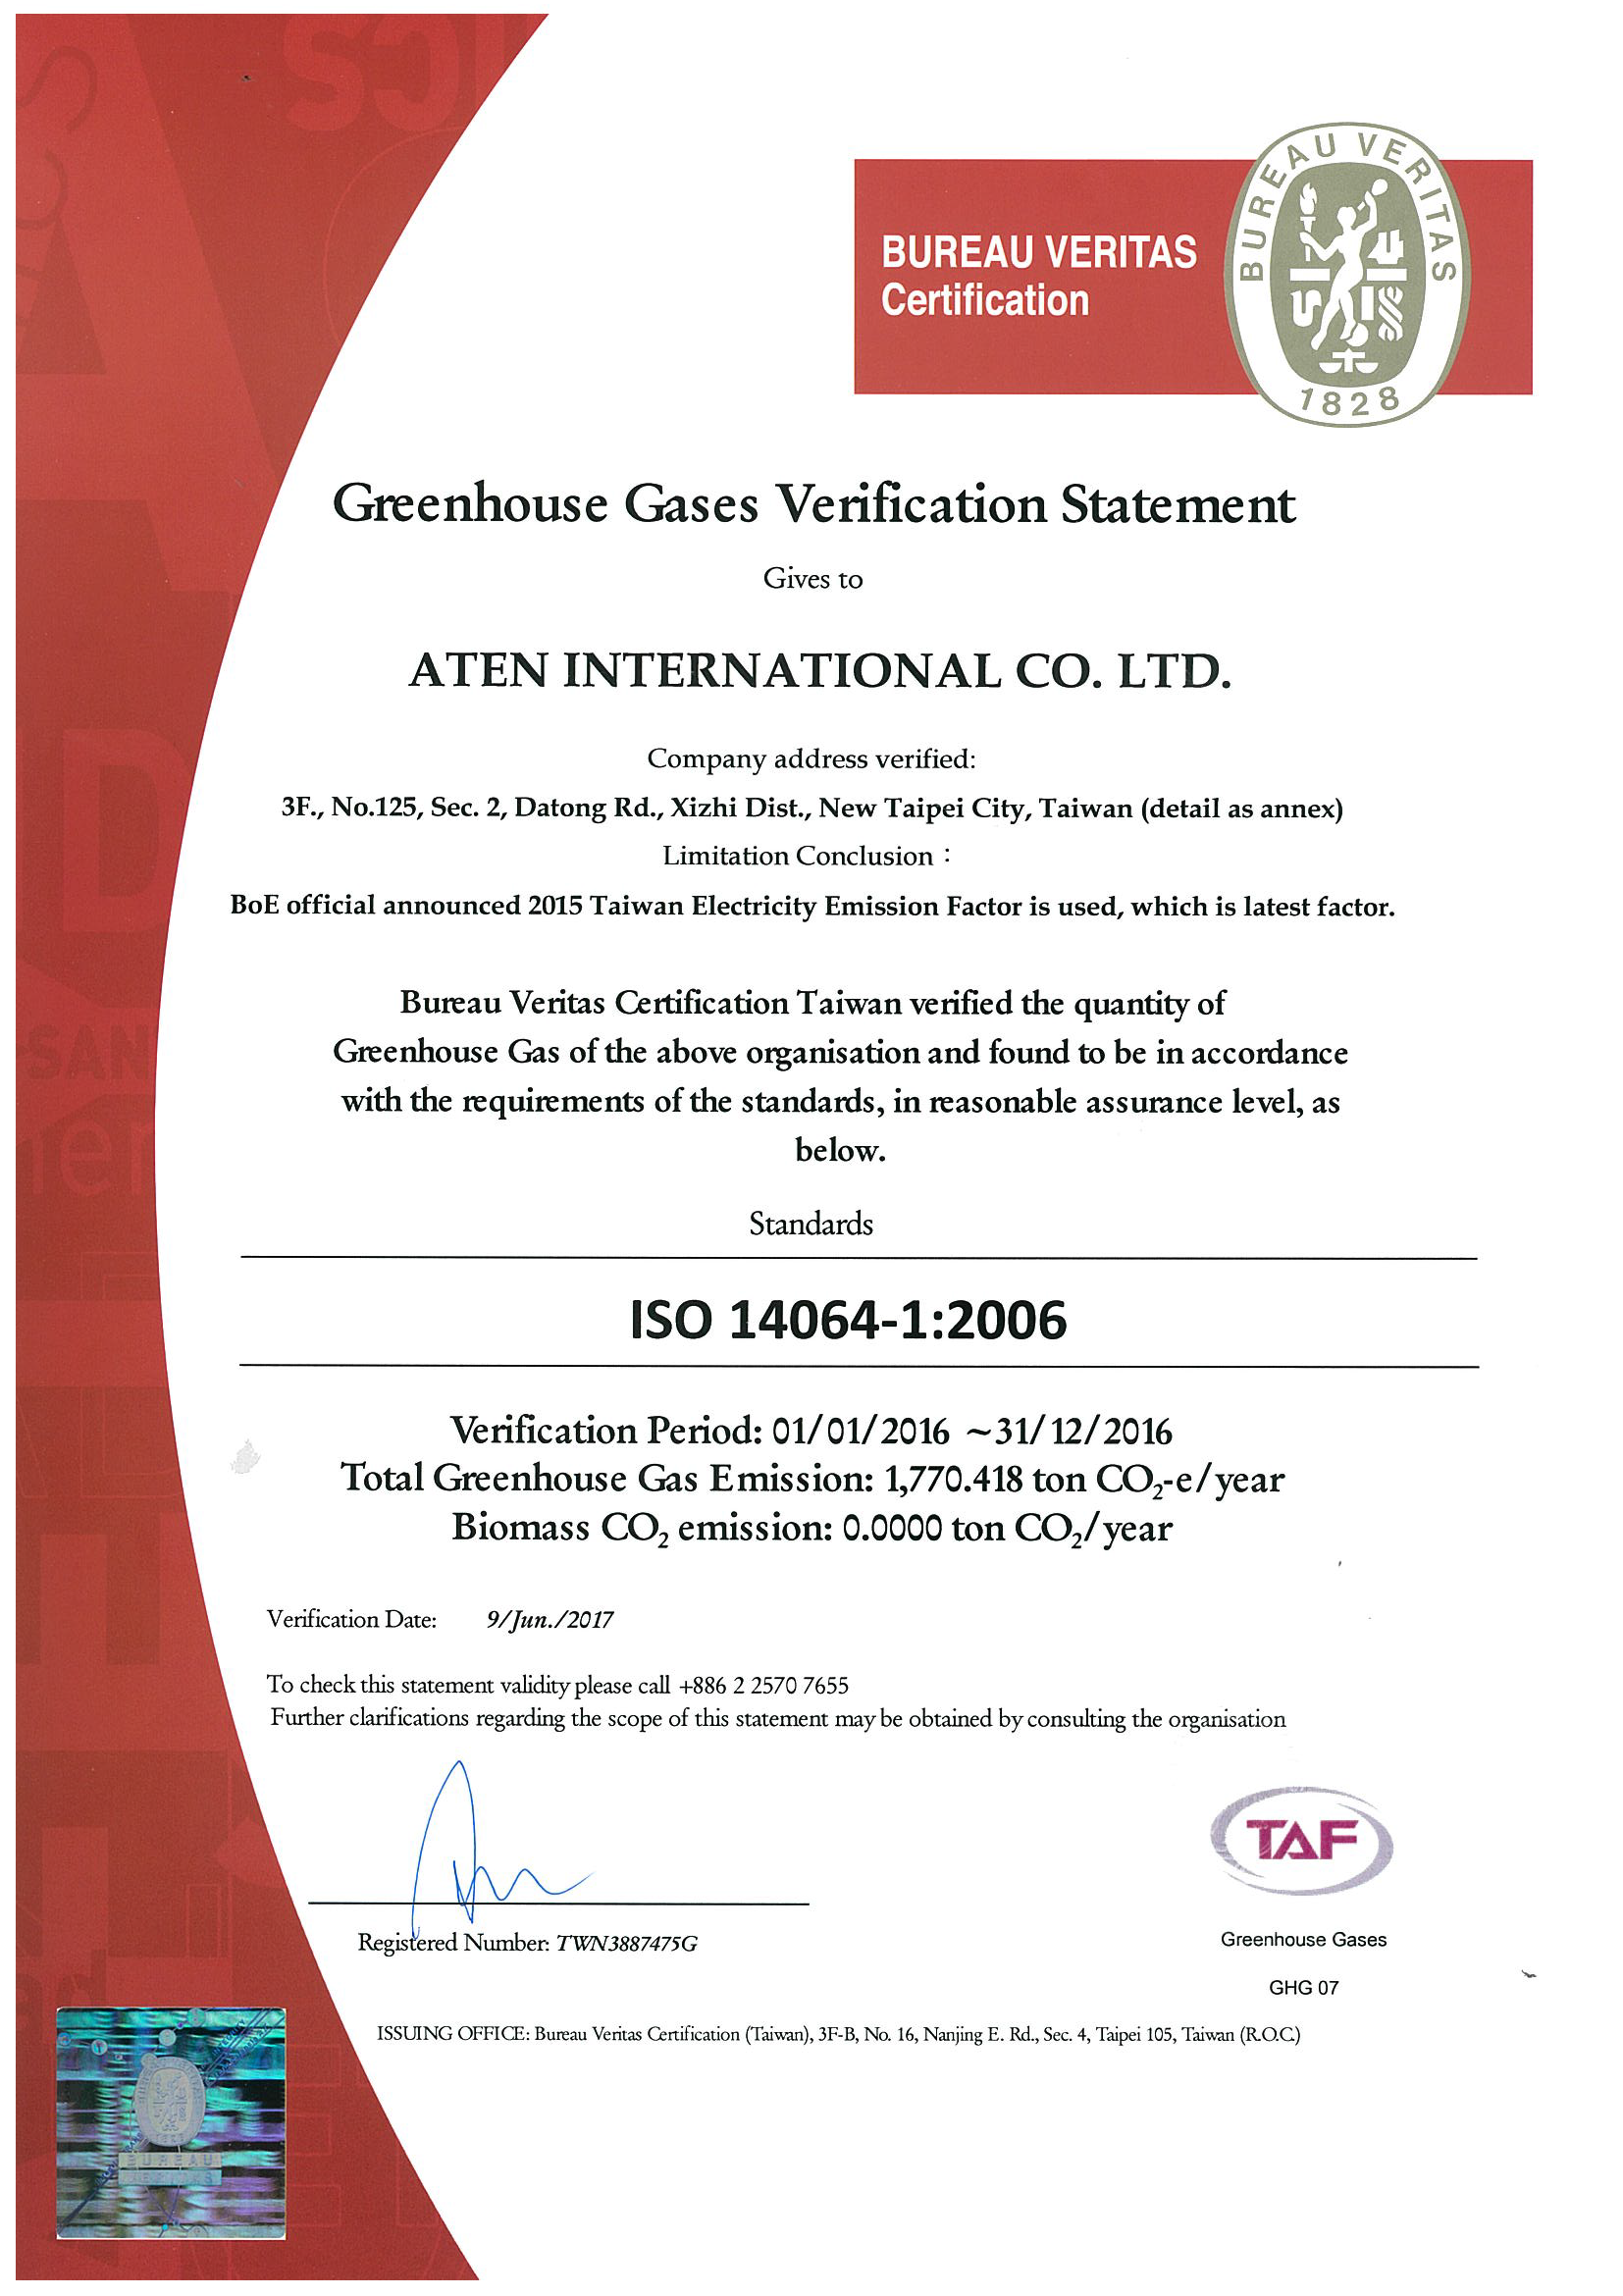 Quality and environment management system iso 14001 environment management system certificate xflitez Choice Image